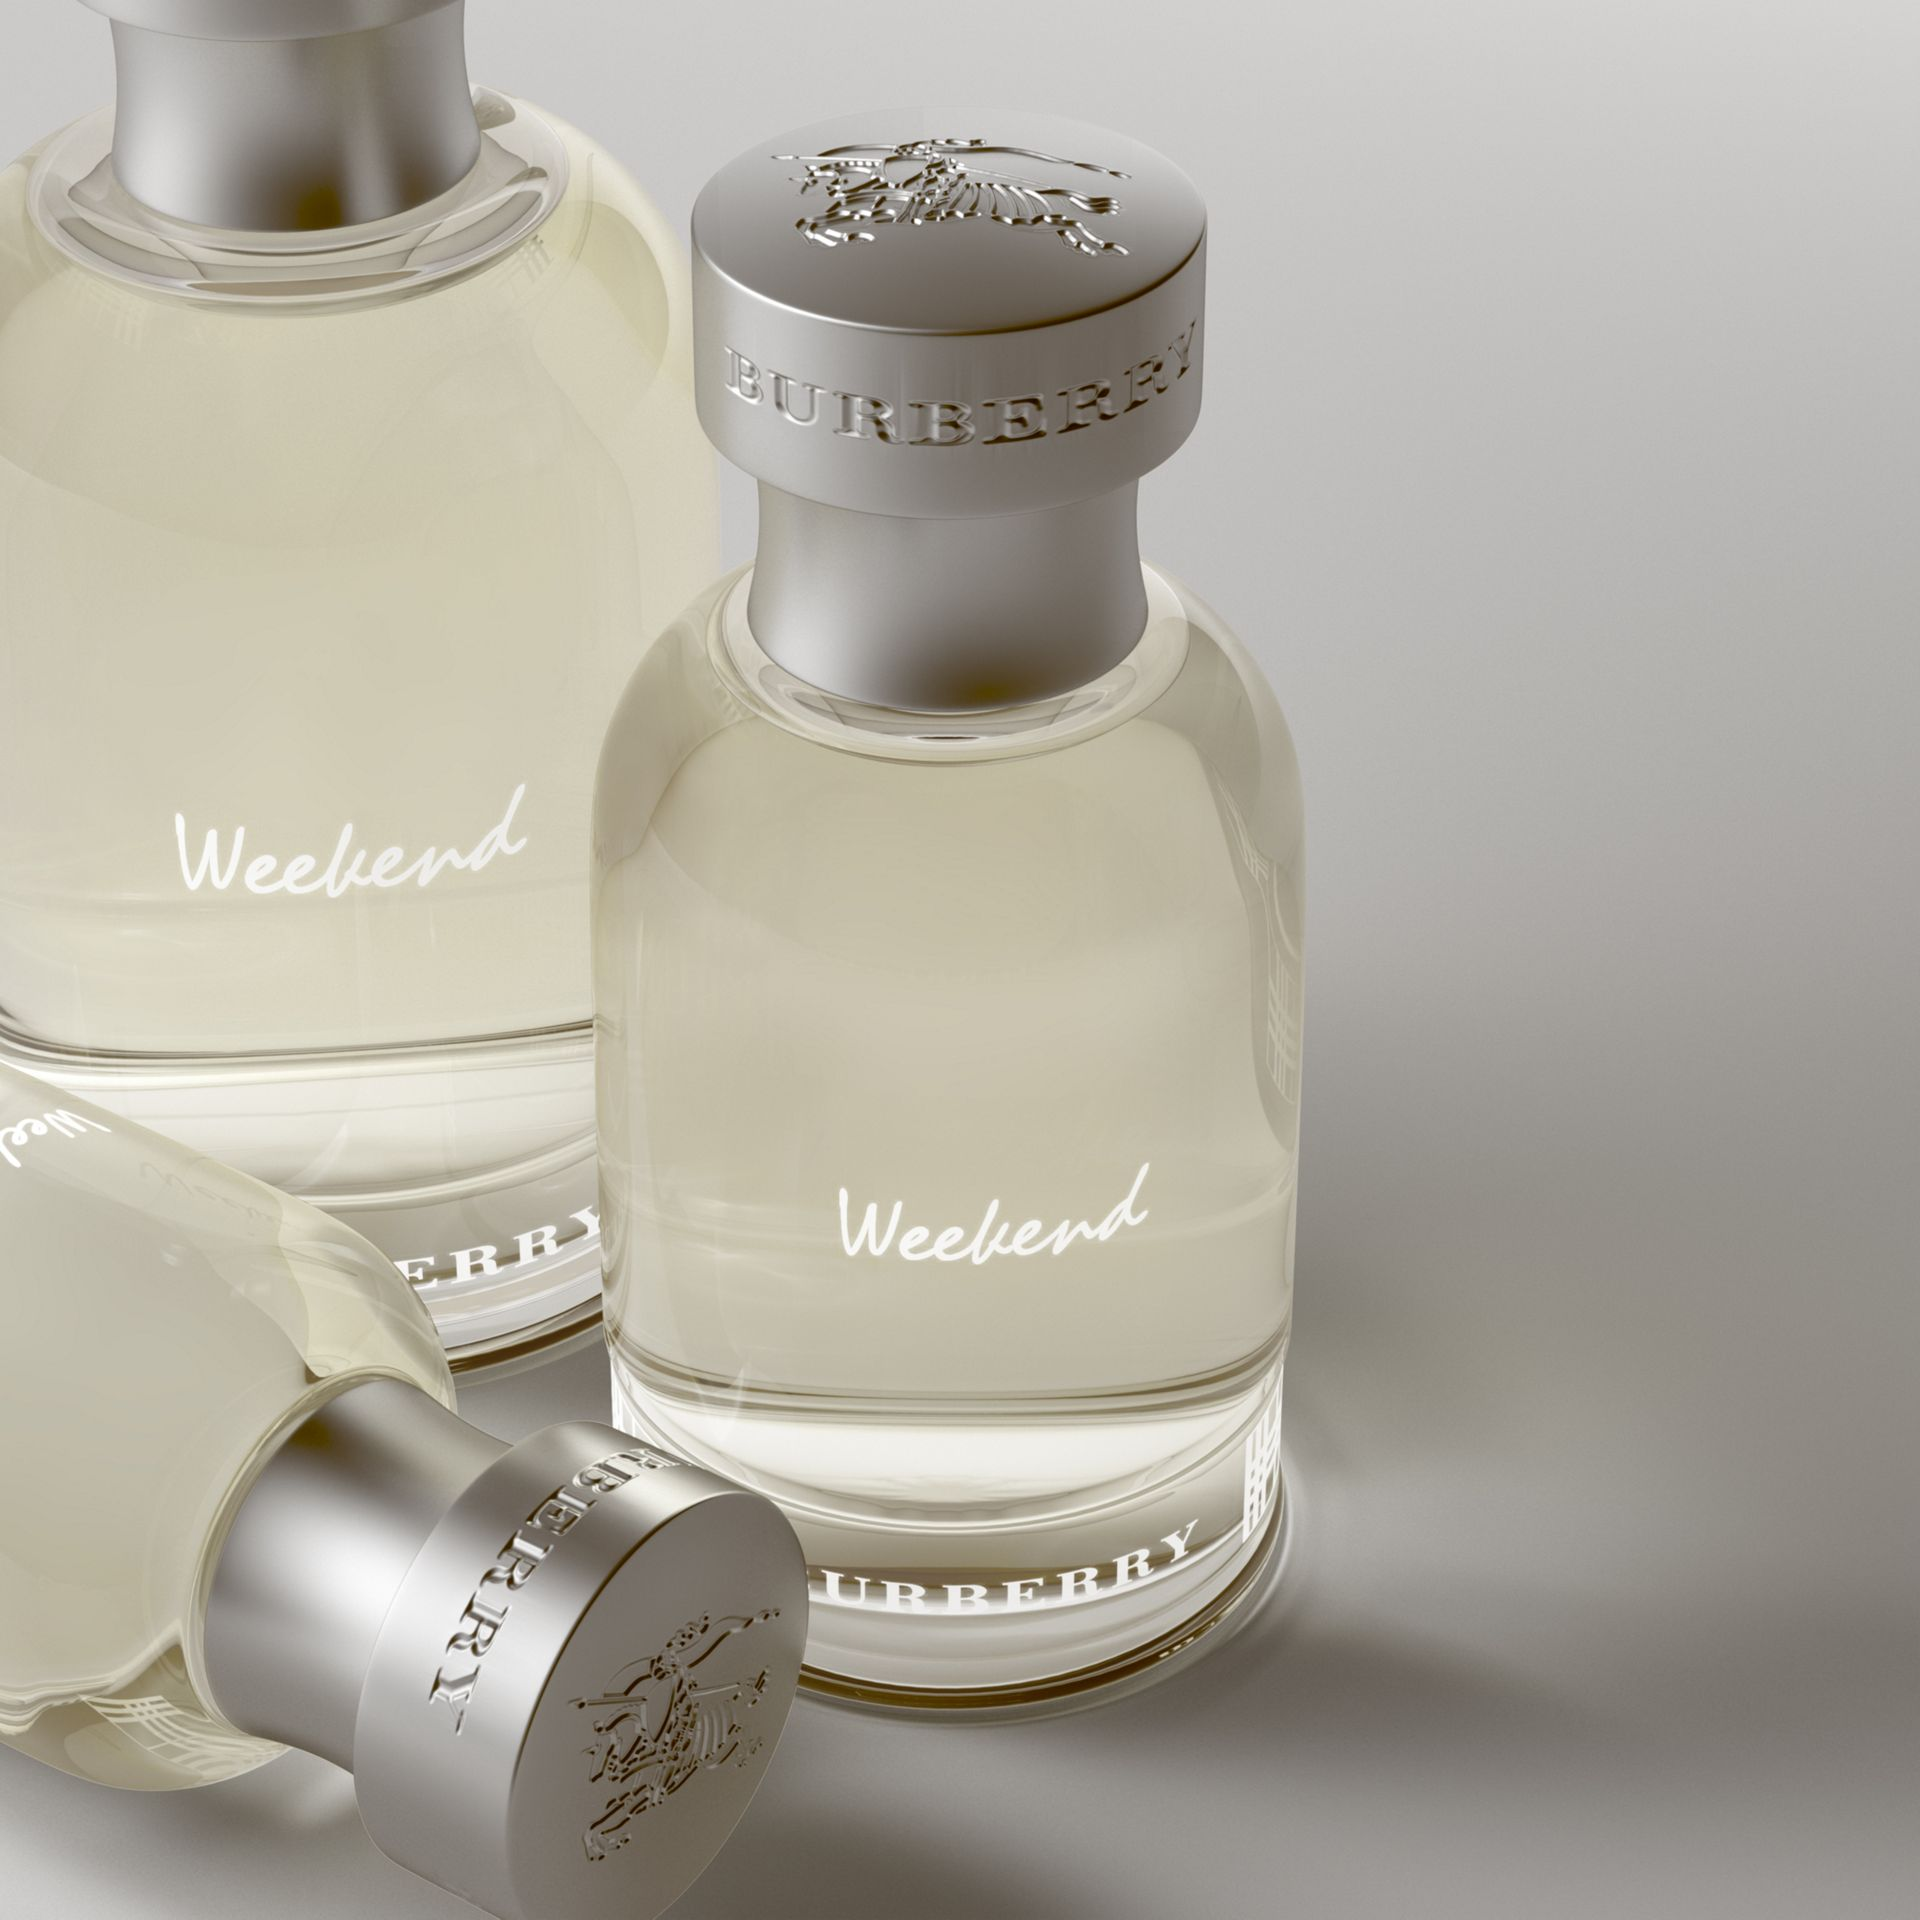 Burberry Weekend Eau de Toilette 50ml - Men | Burberry - gallery image 2